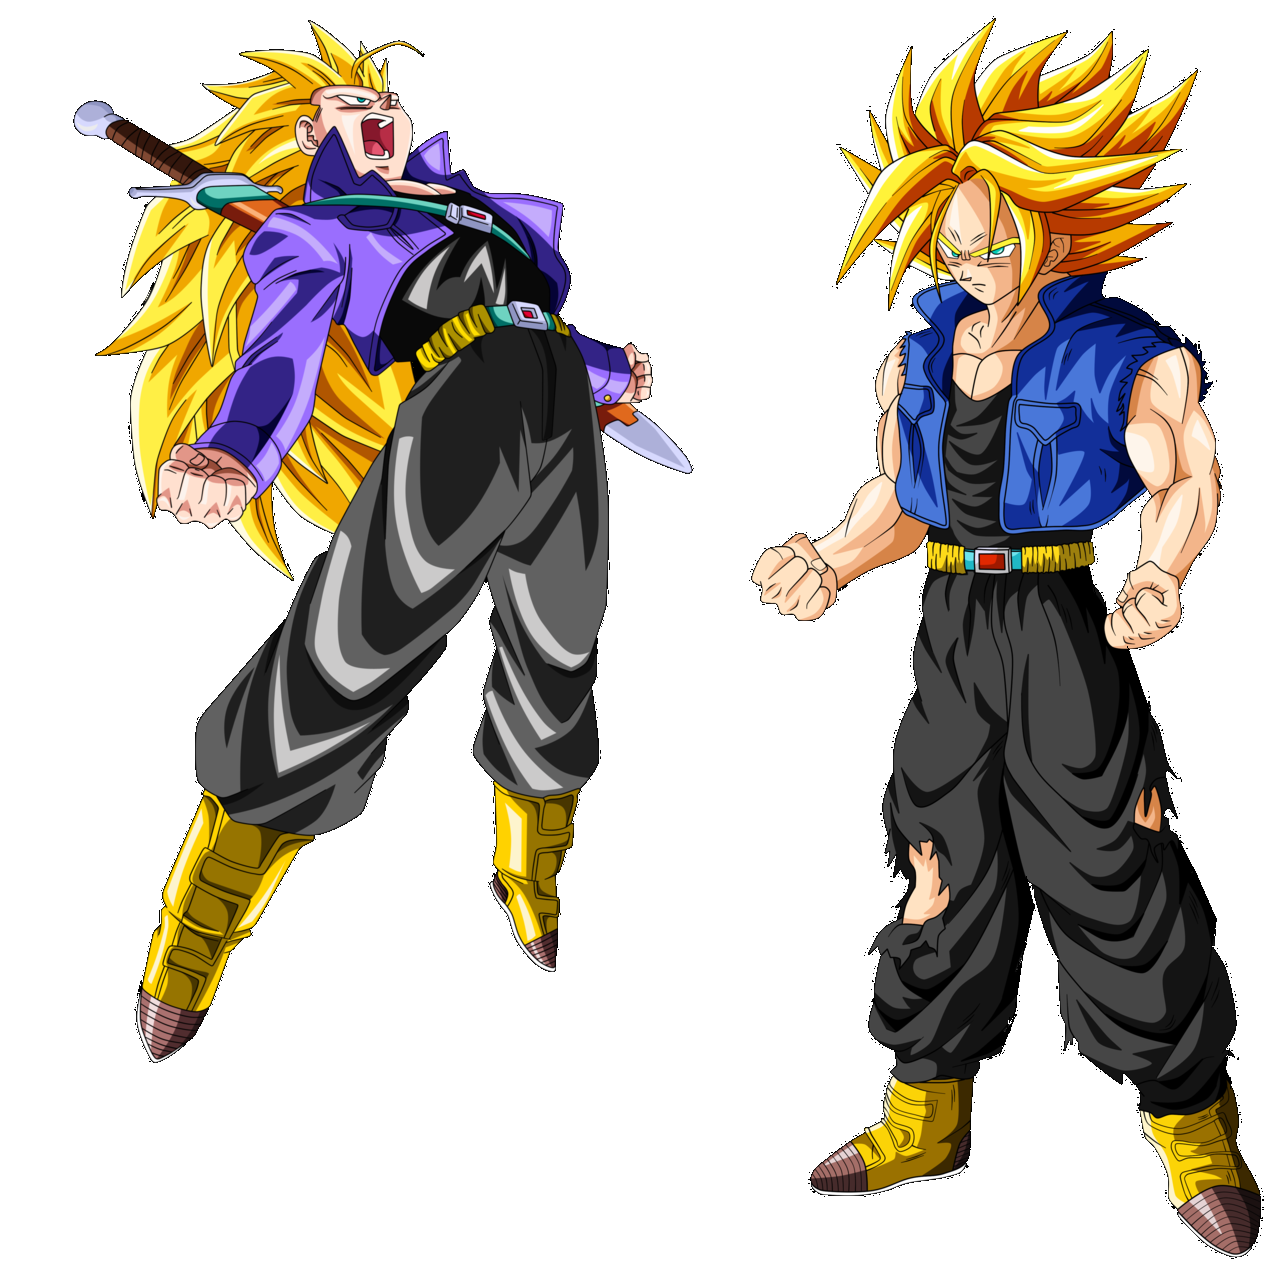 Archivo:Trunks SSJ2 Y SSJ3.png